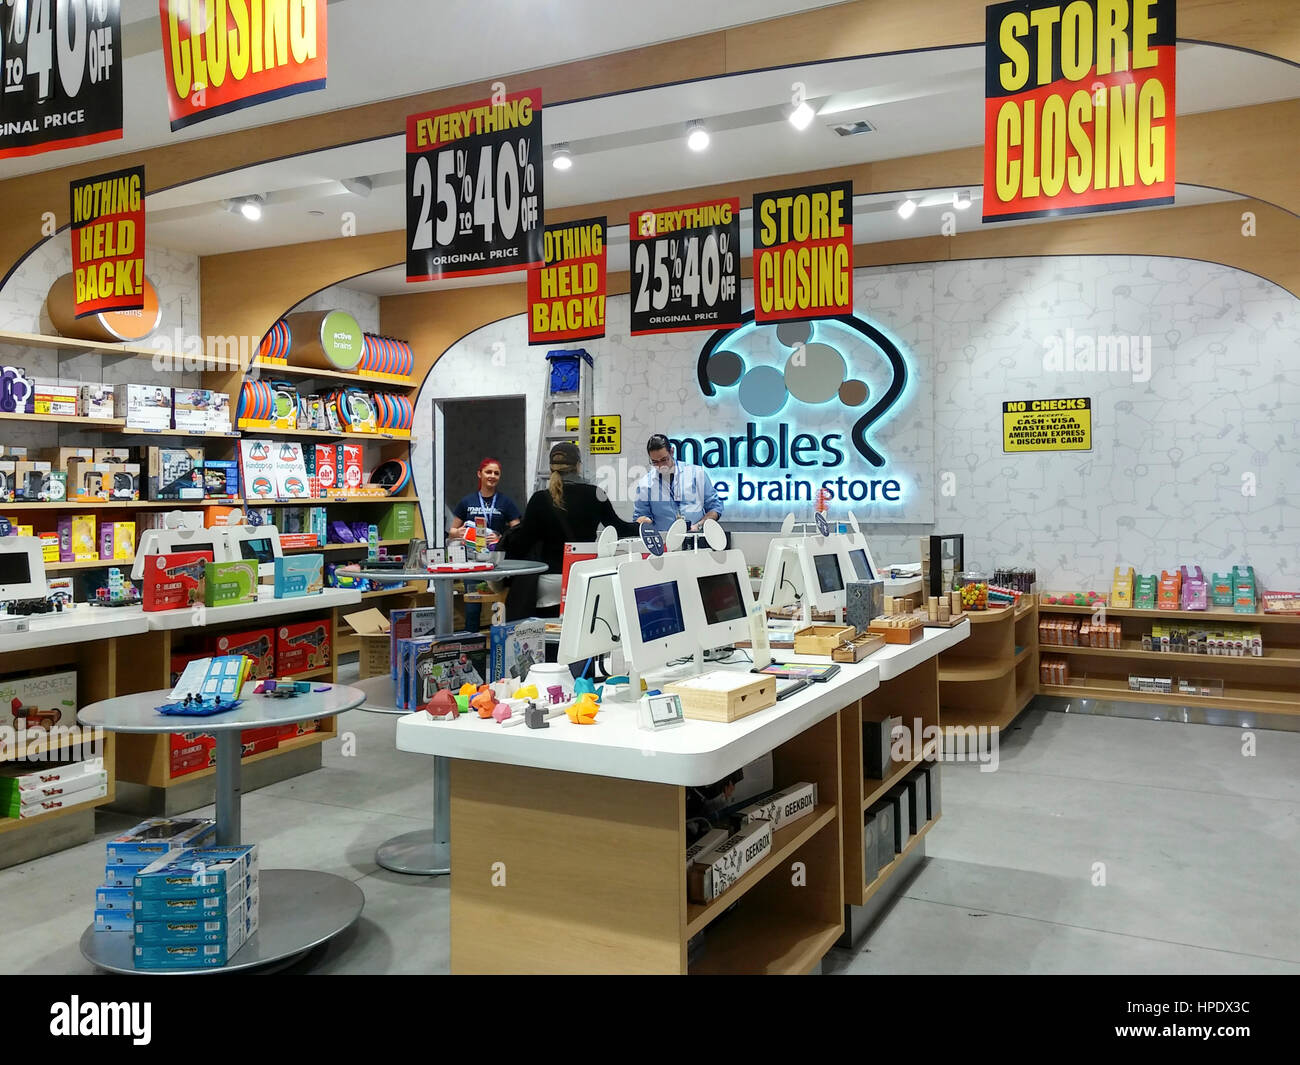 Toy Store Chain Stock Photos Toy Store Chain Stock Images Alamy - Marbles the brain store us map